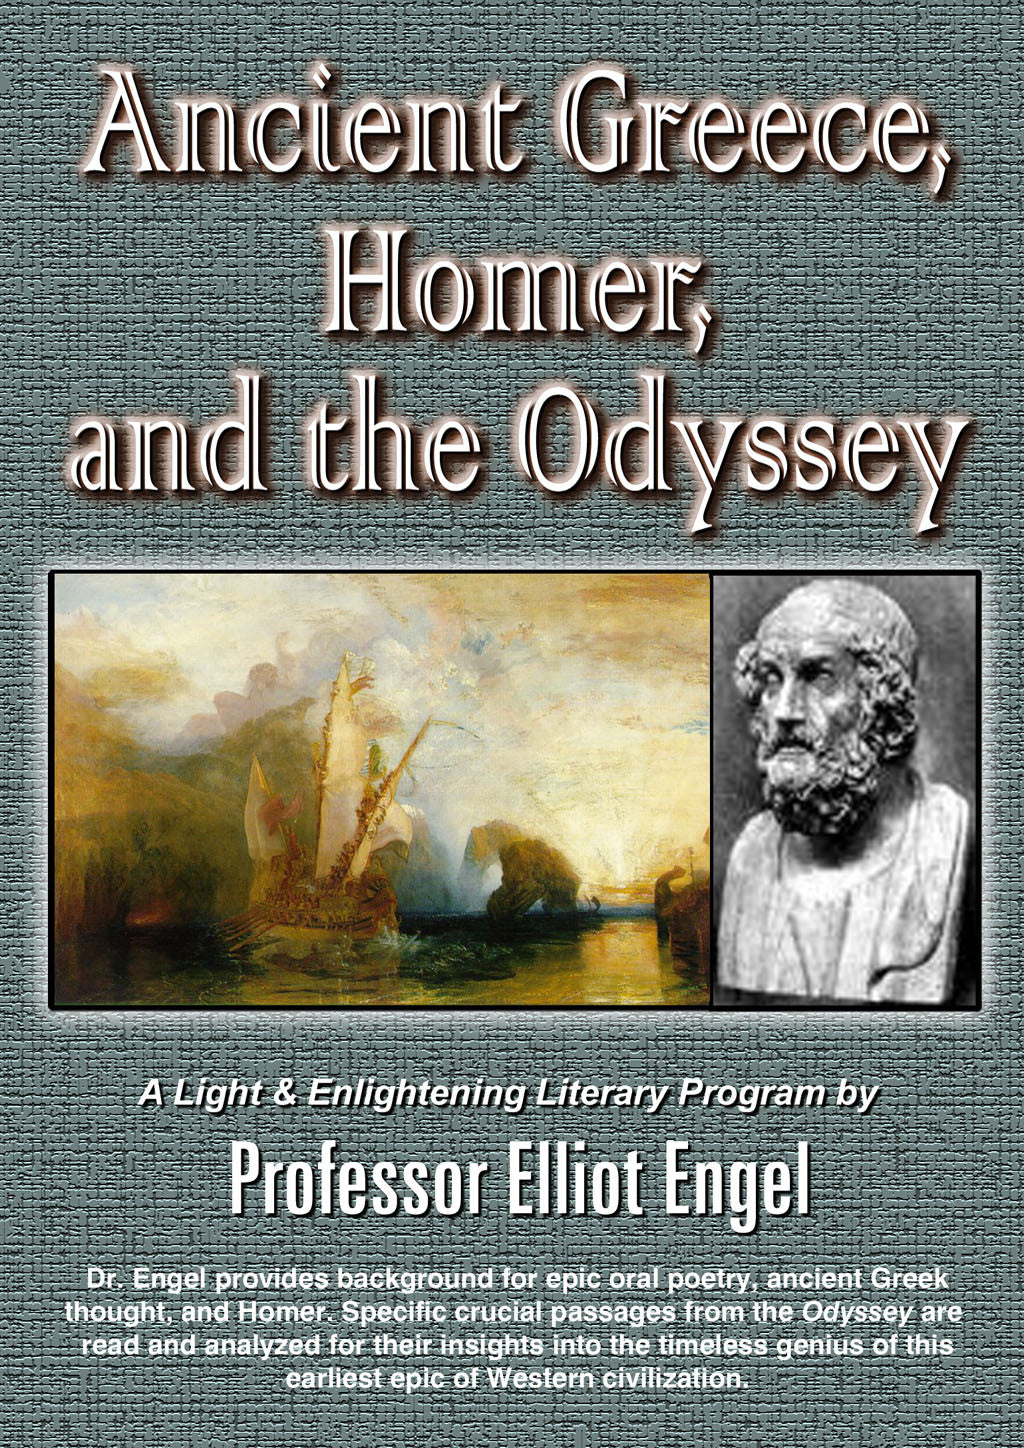 Ancient Greece, Homer, and the Odyssey